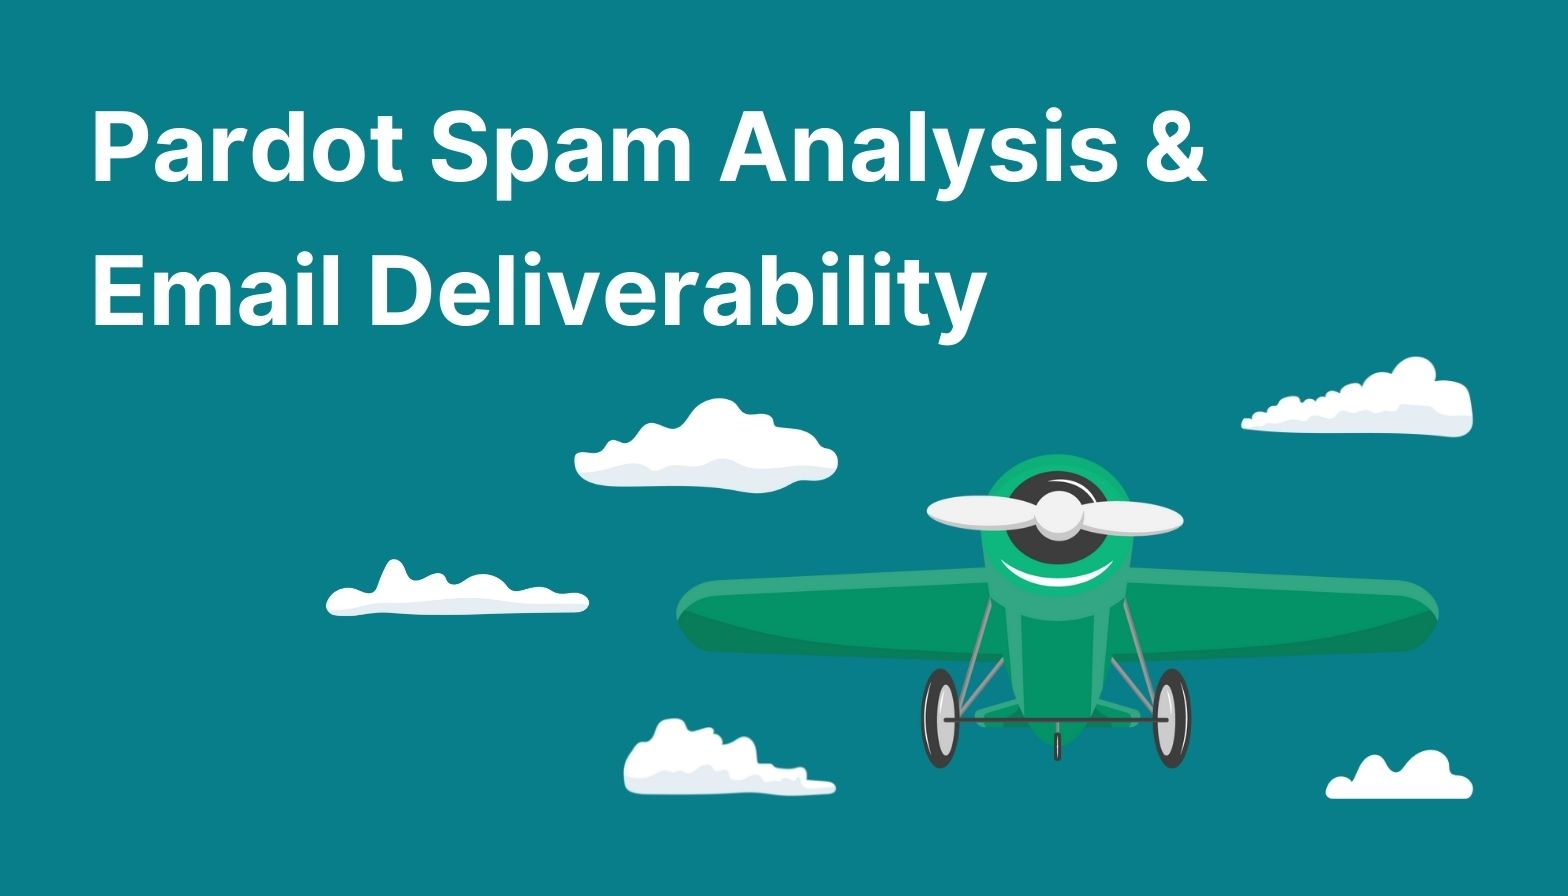 Feature image: Pardot spam analysis and email deliverability